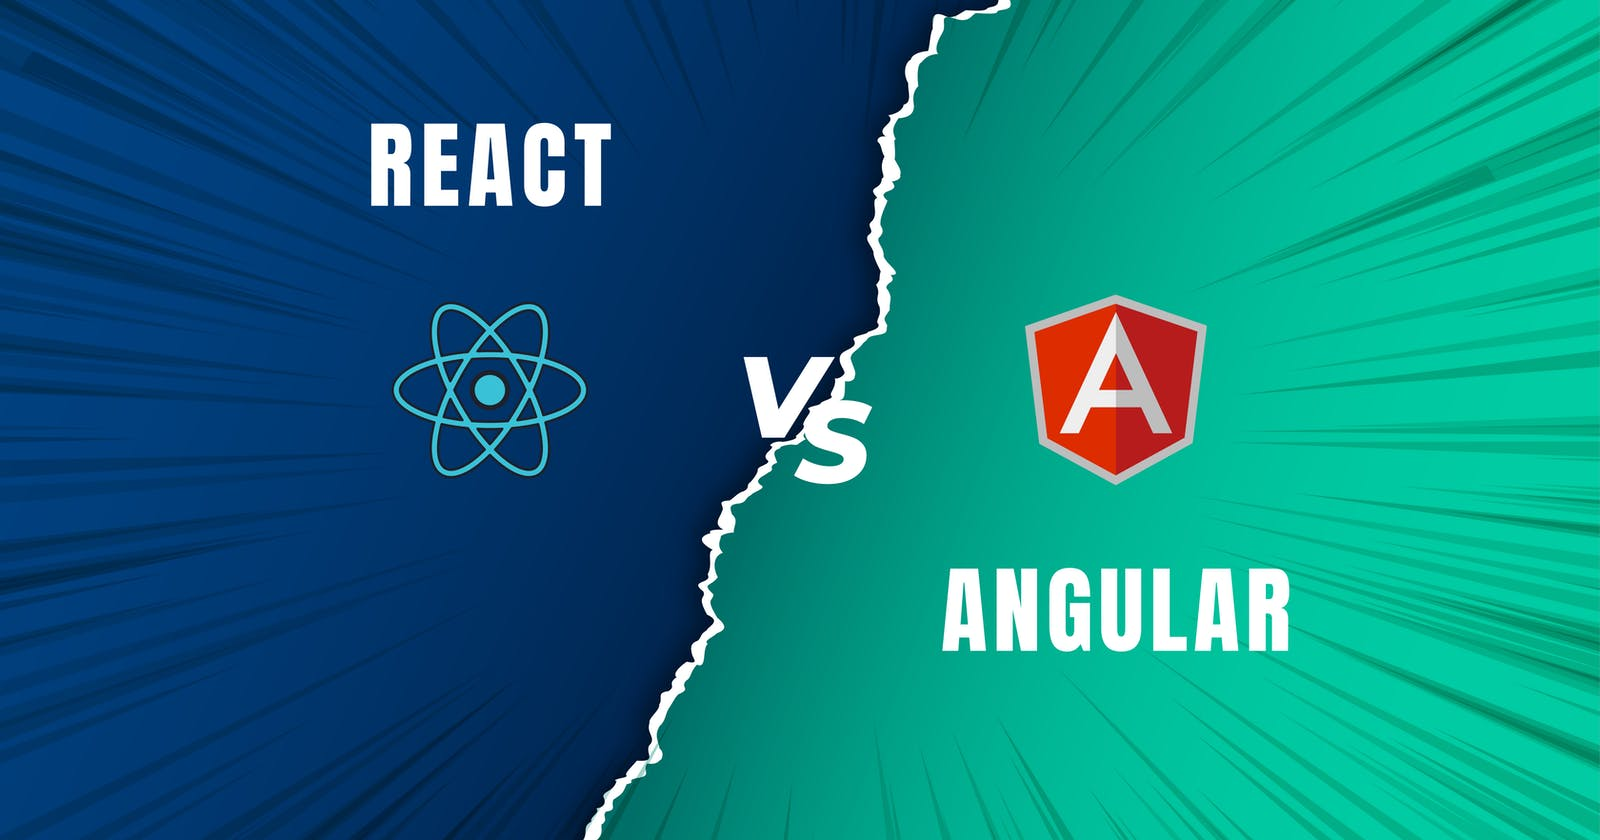 React vs Angular: Which one to choose for your Web App?